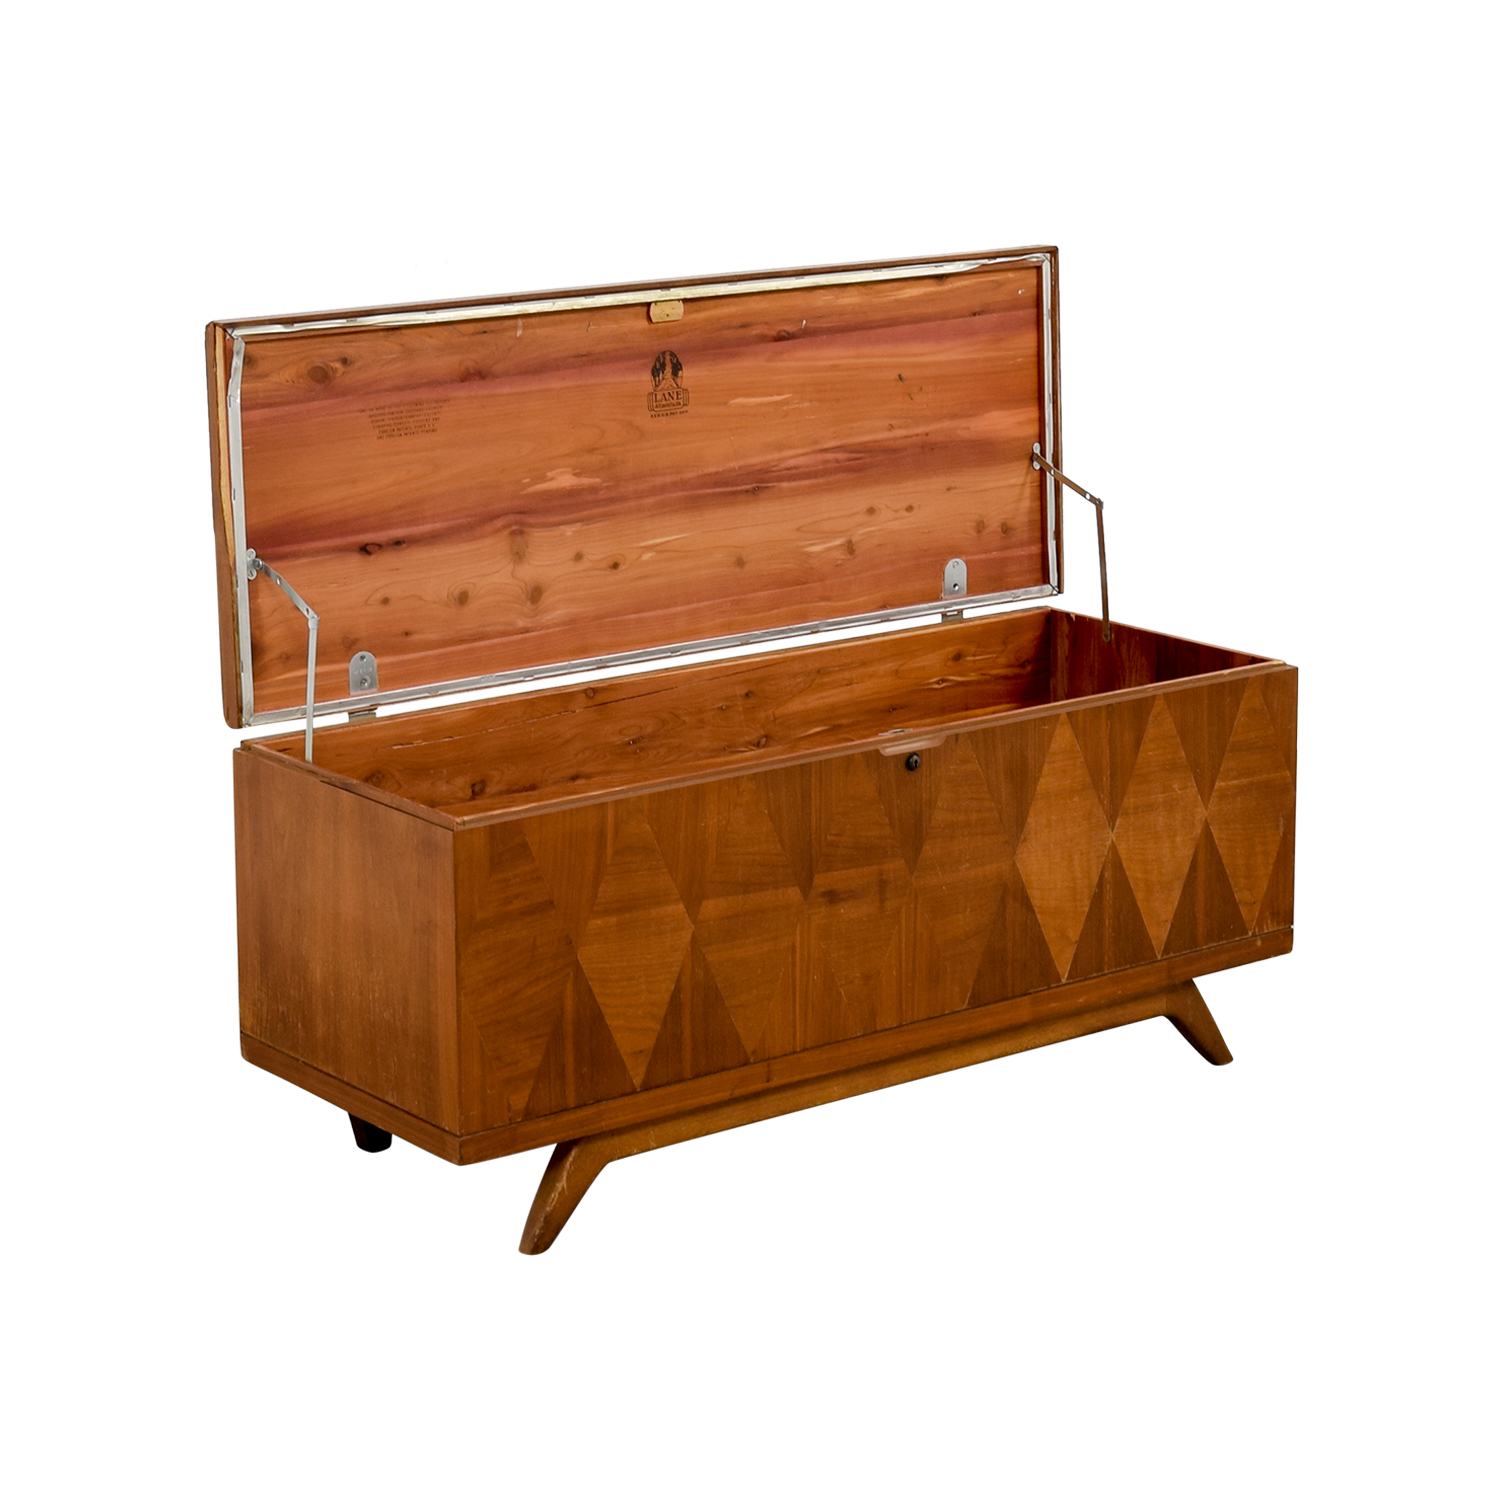 Beau ... Shop Lane Furniture Wooden Trunk Coffee Table Storage Unit Lane Furniture  Tables ...